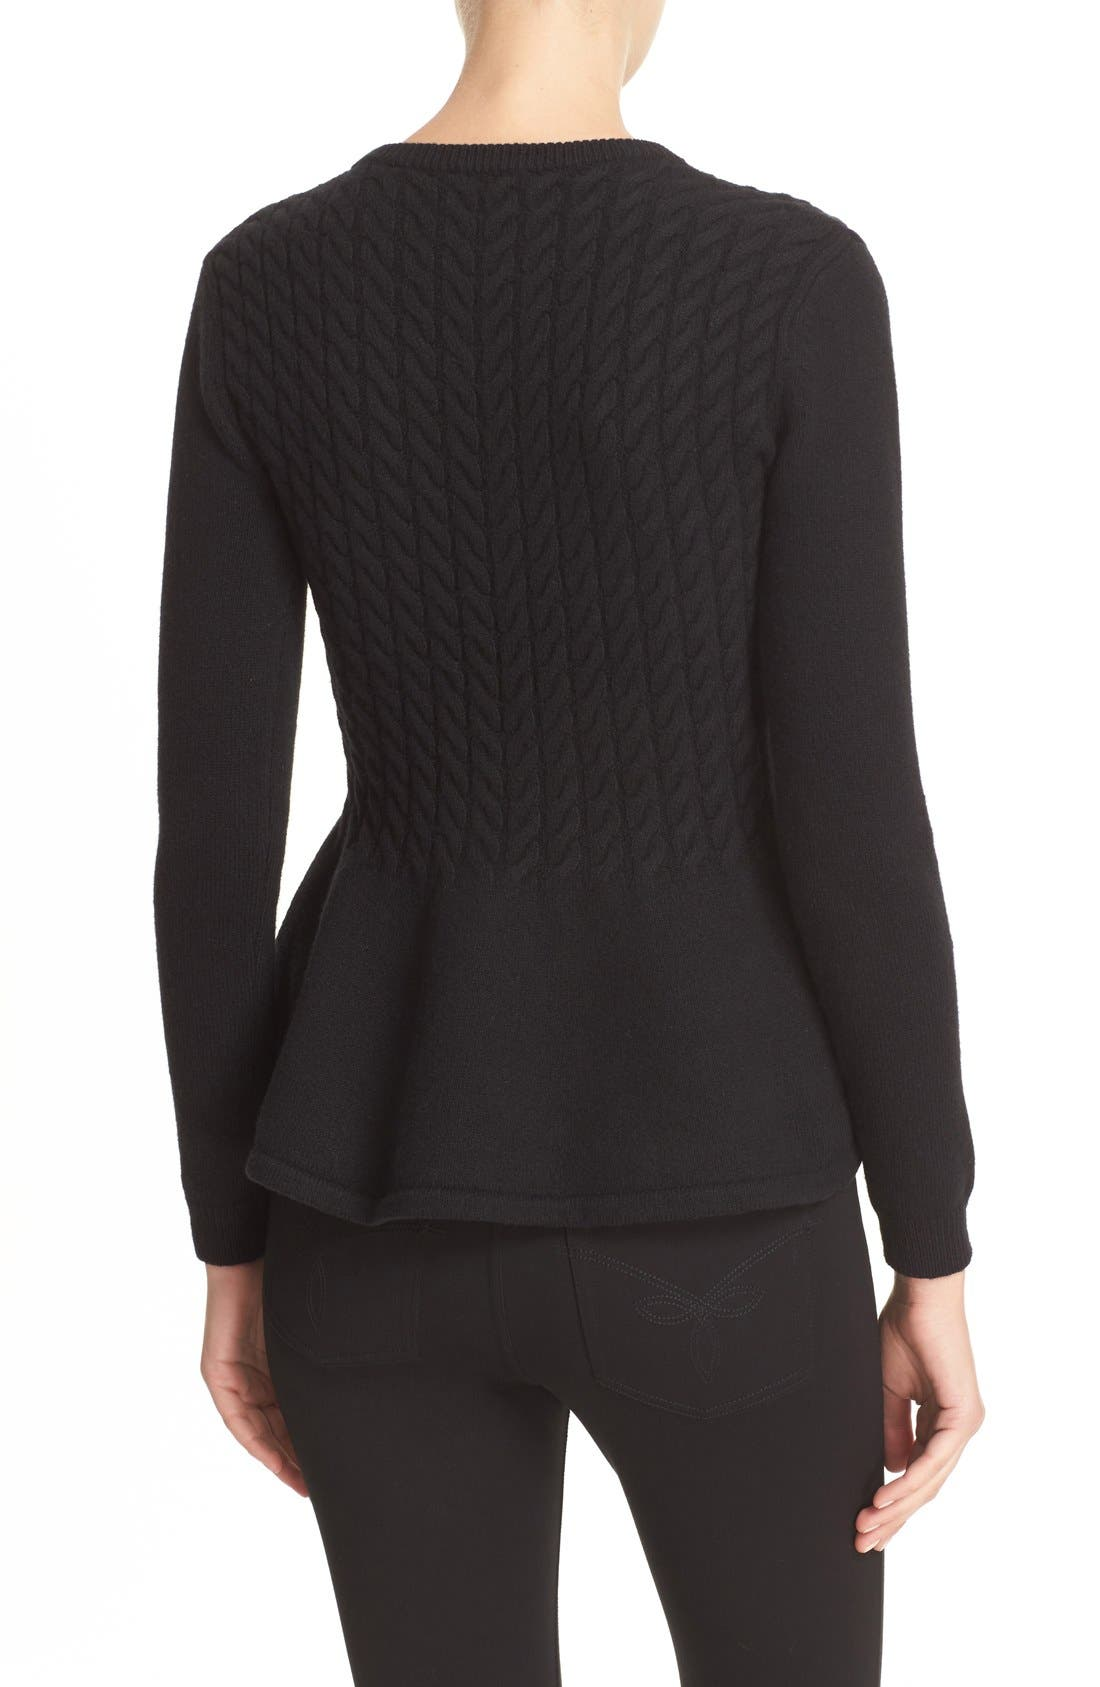 TED BAKER LONDON,                             'Mereda' Cable Knit Peplum Sweater,                             Alternate thumbnail 2, color,                             001